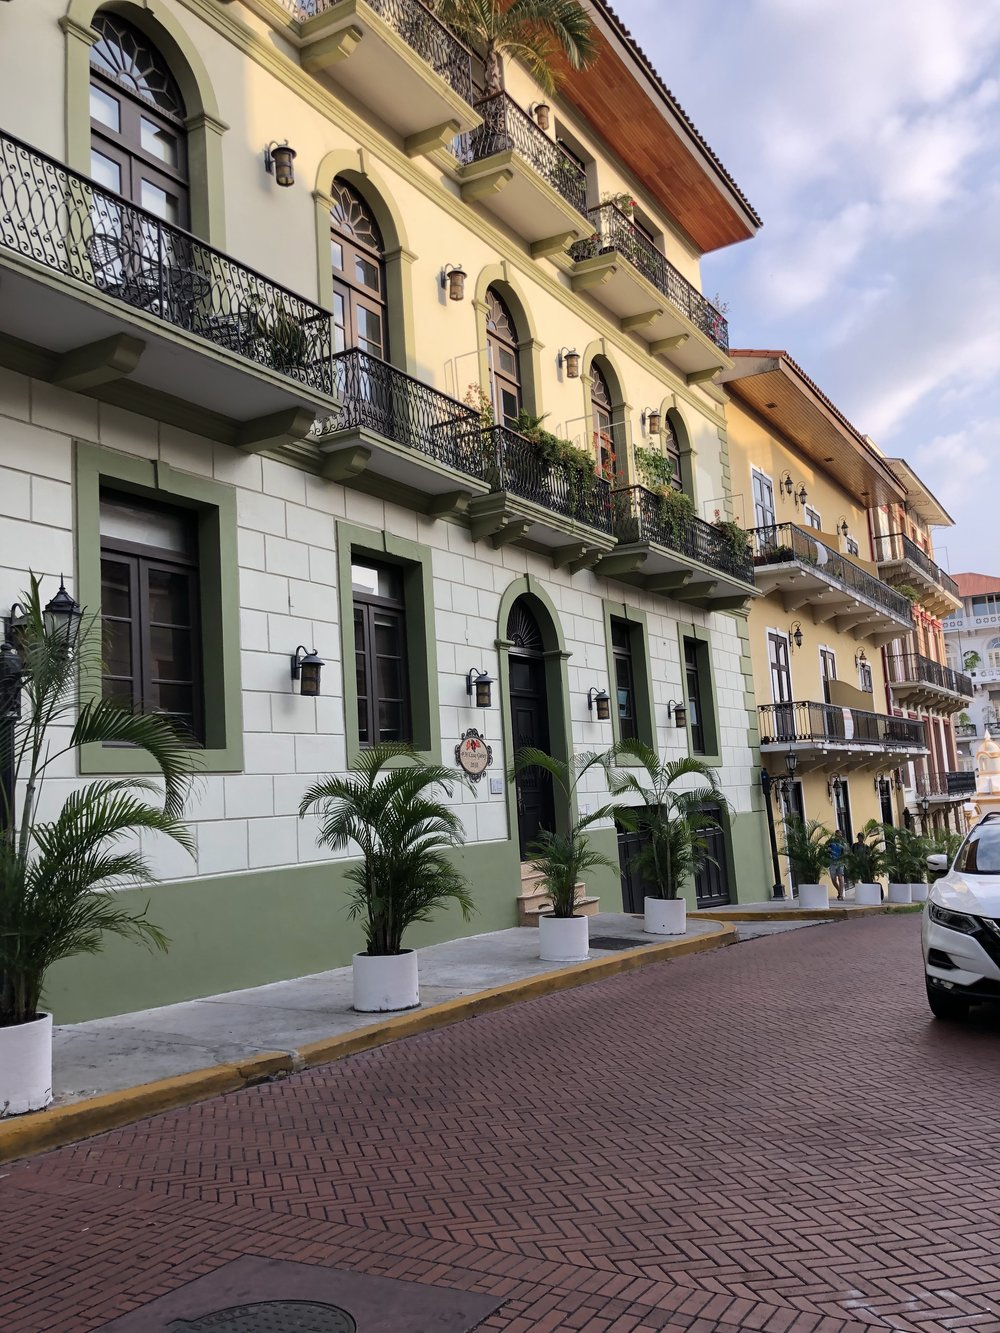 Casco Viejo, or the Old District, in Panama City.